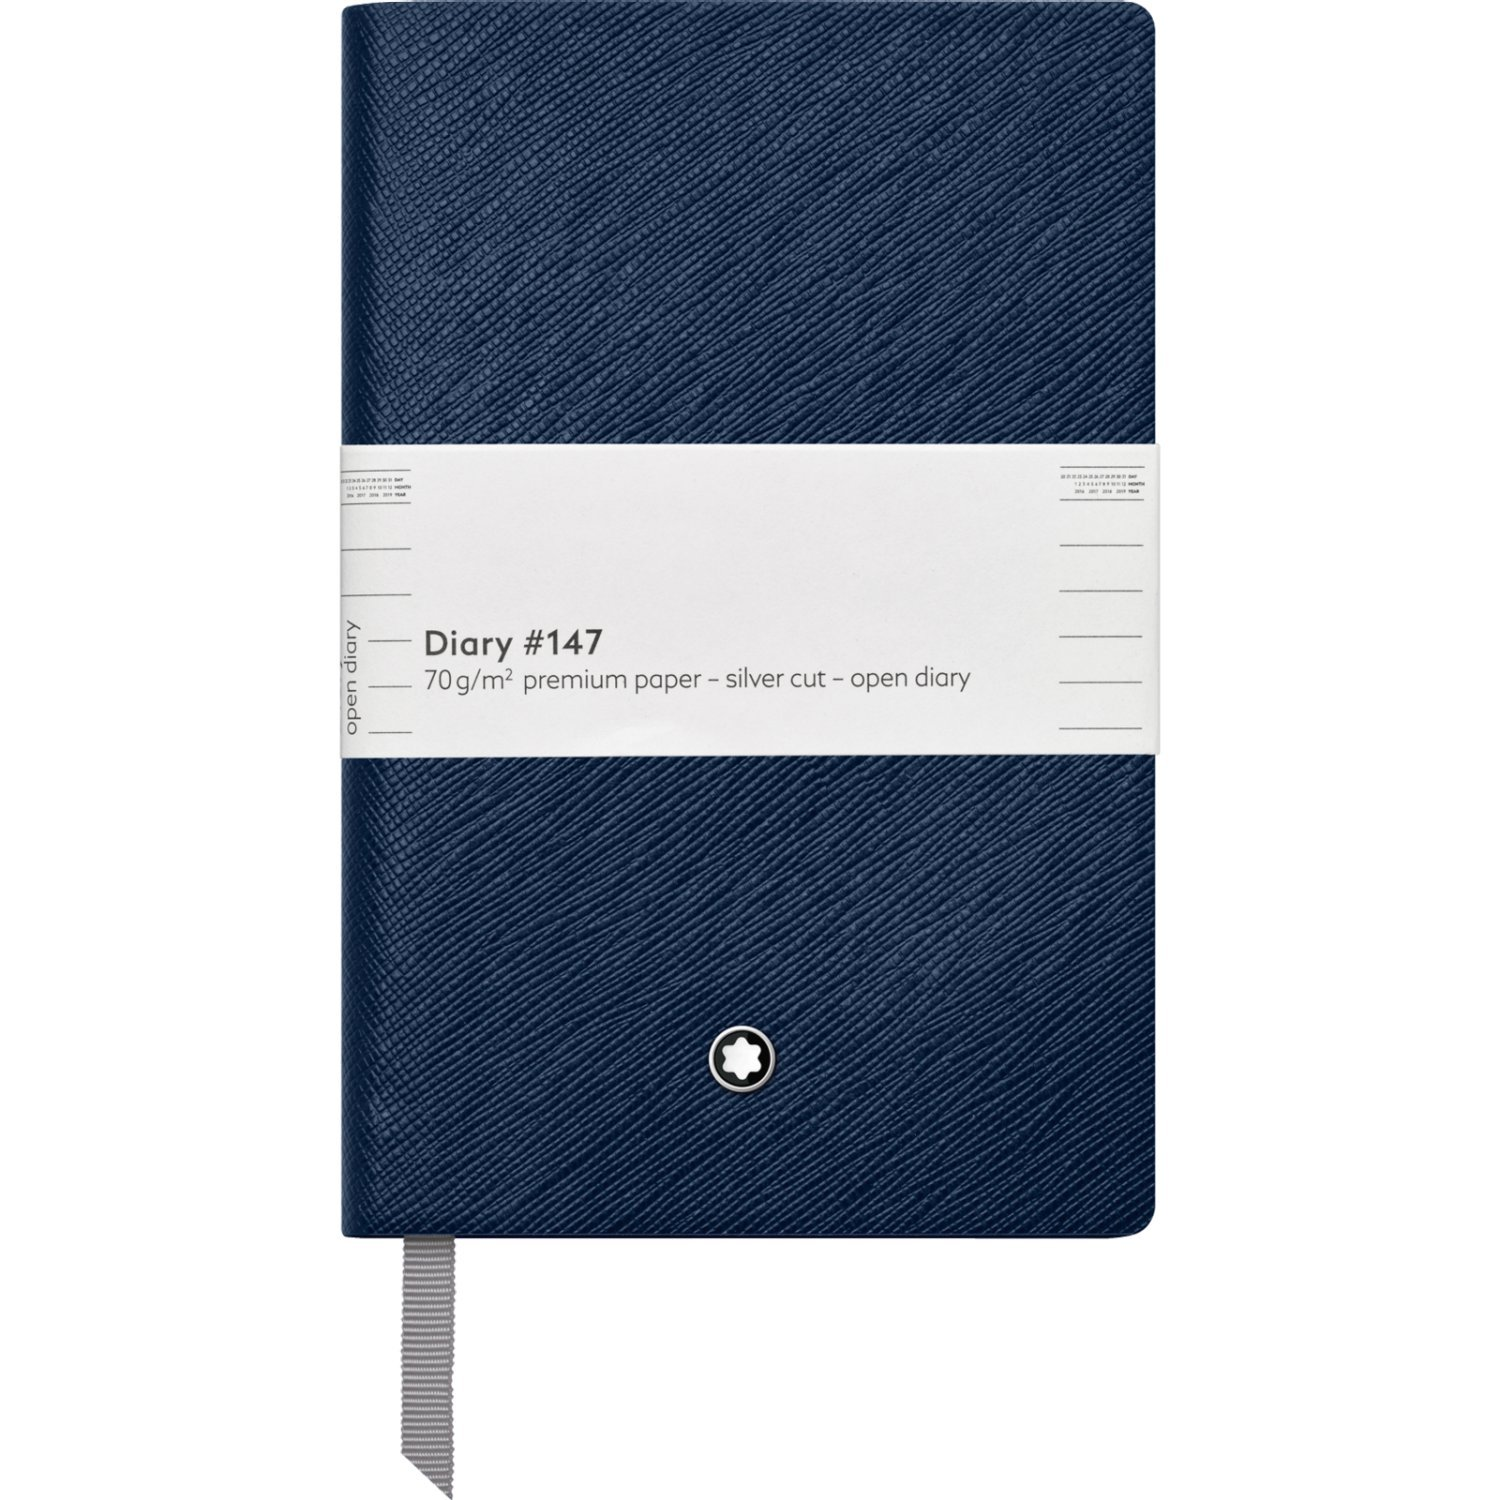 Montblanc Open Diary Indigo #147 Fine Stationery 115622 / Elegant Notebook with Leather Binding and Lined Pages for Daily Planning / 1 x (3.5 x 5.5 in.)